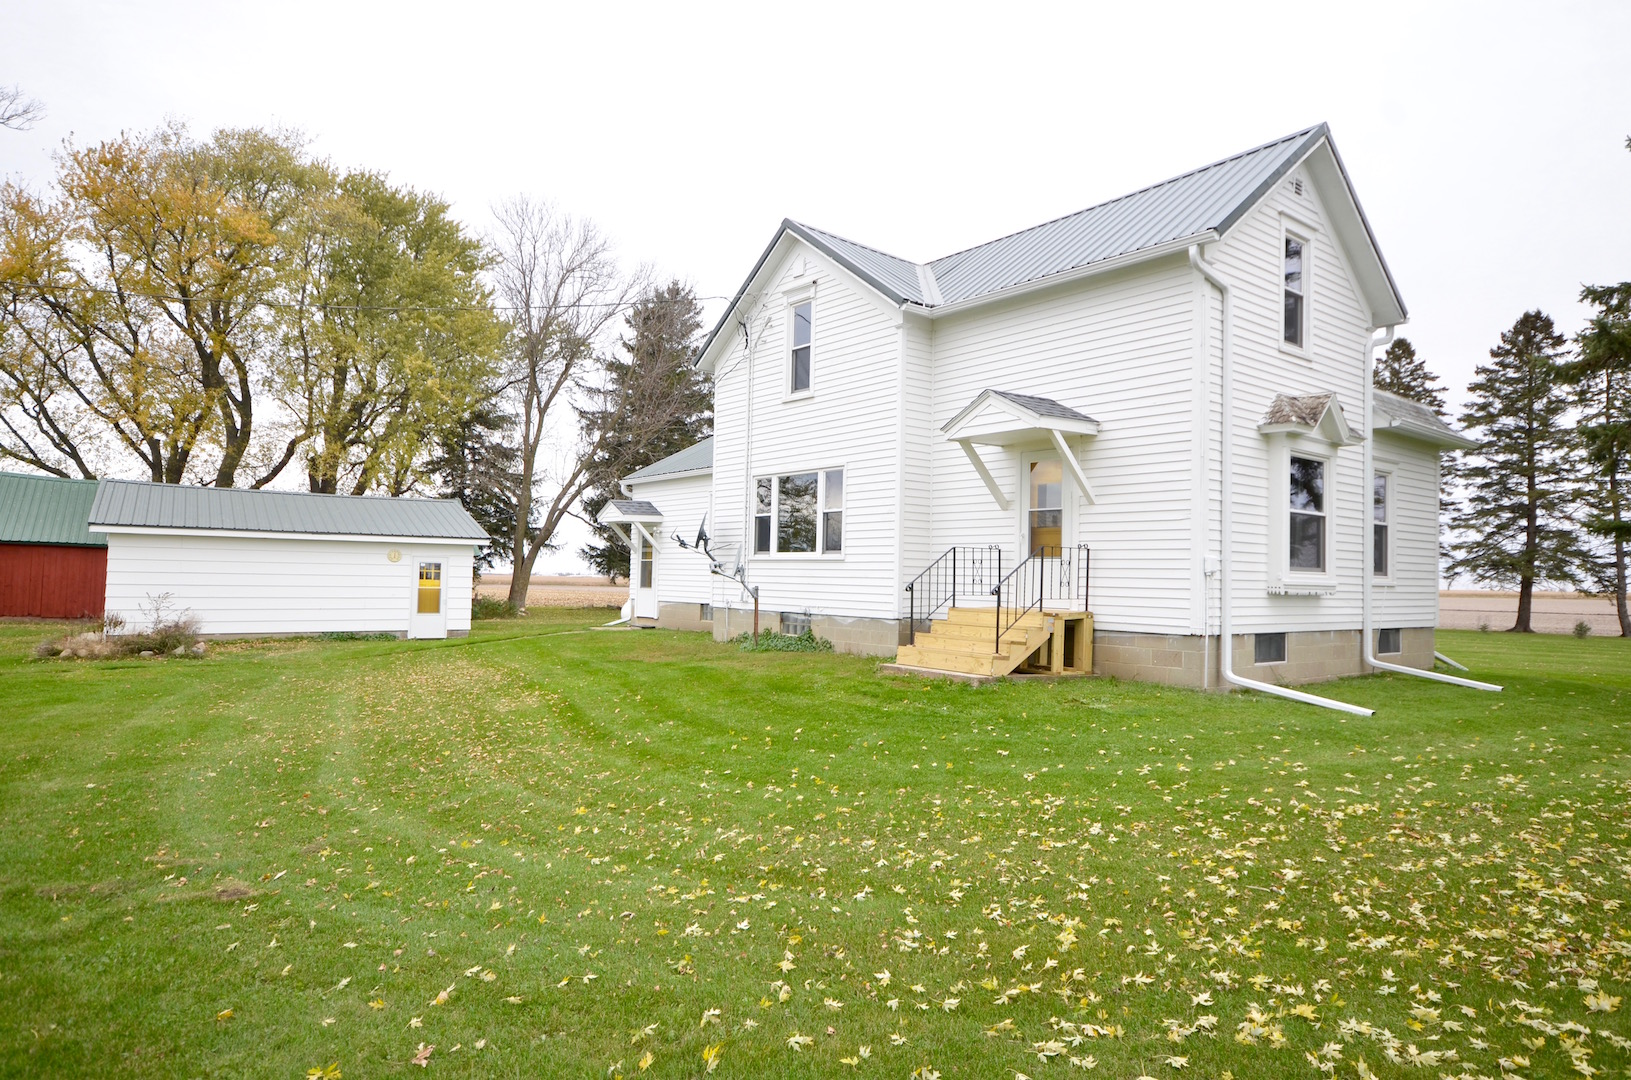 1580 Usher Ave. Sumner, IA | Acreage for Sale